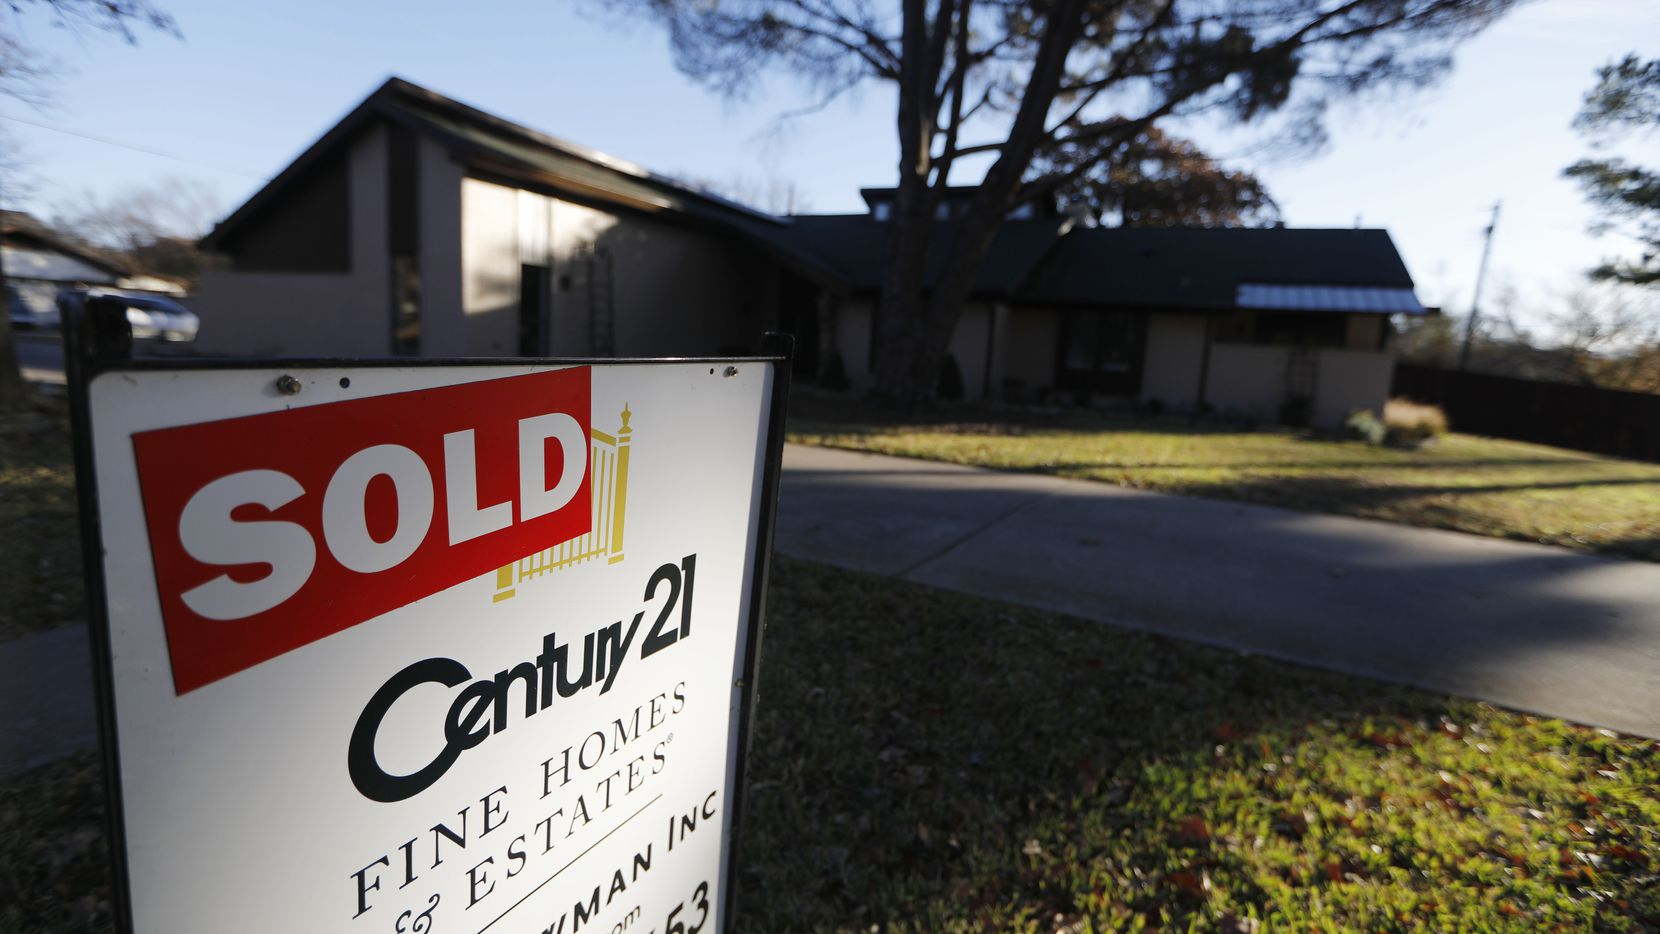 Home sales were higher in more than half of Dallas-area residential districts in 2017.